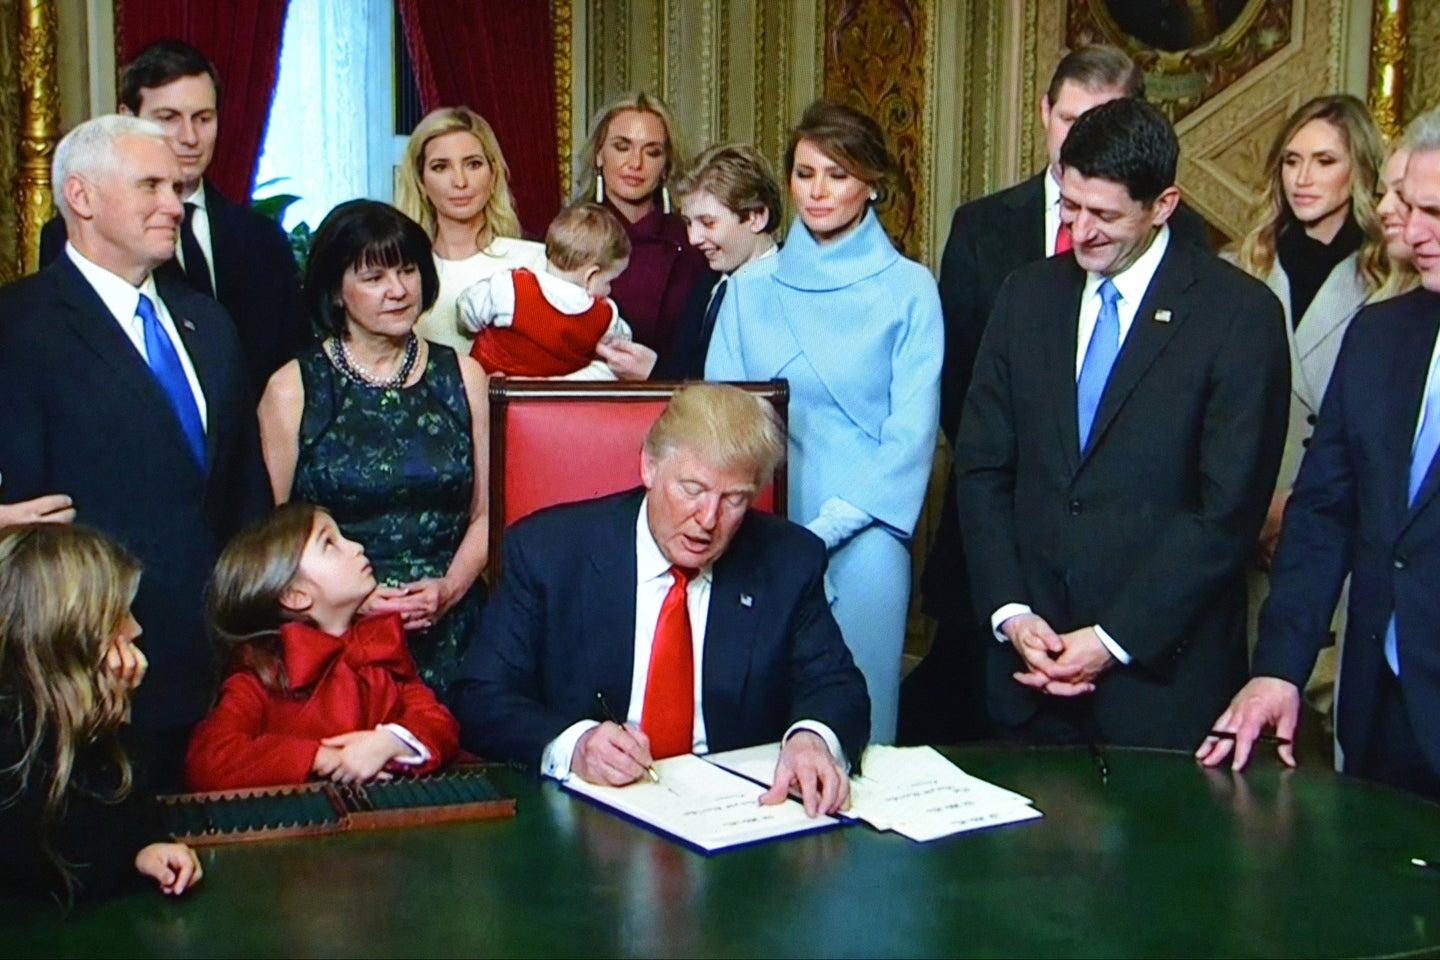 President Donald Trump signing an executive order in the White House in 2017